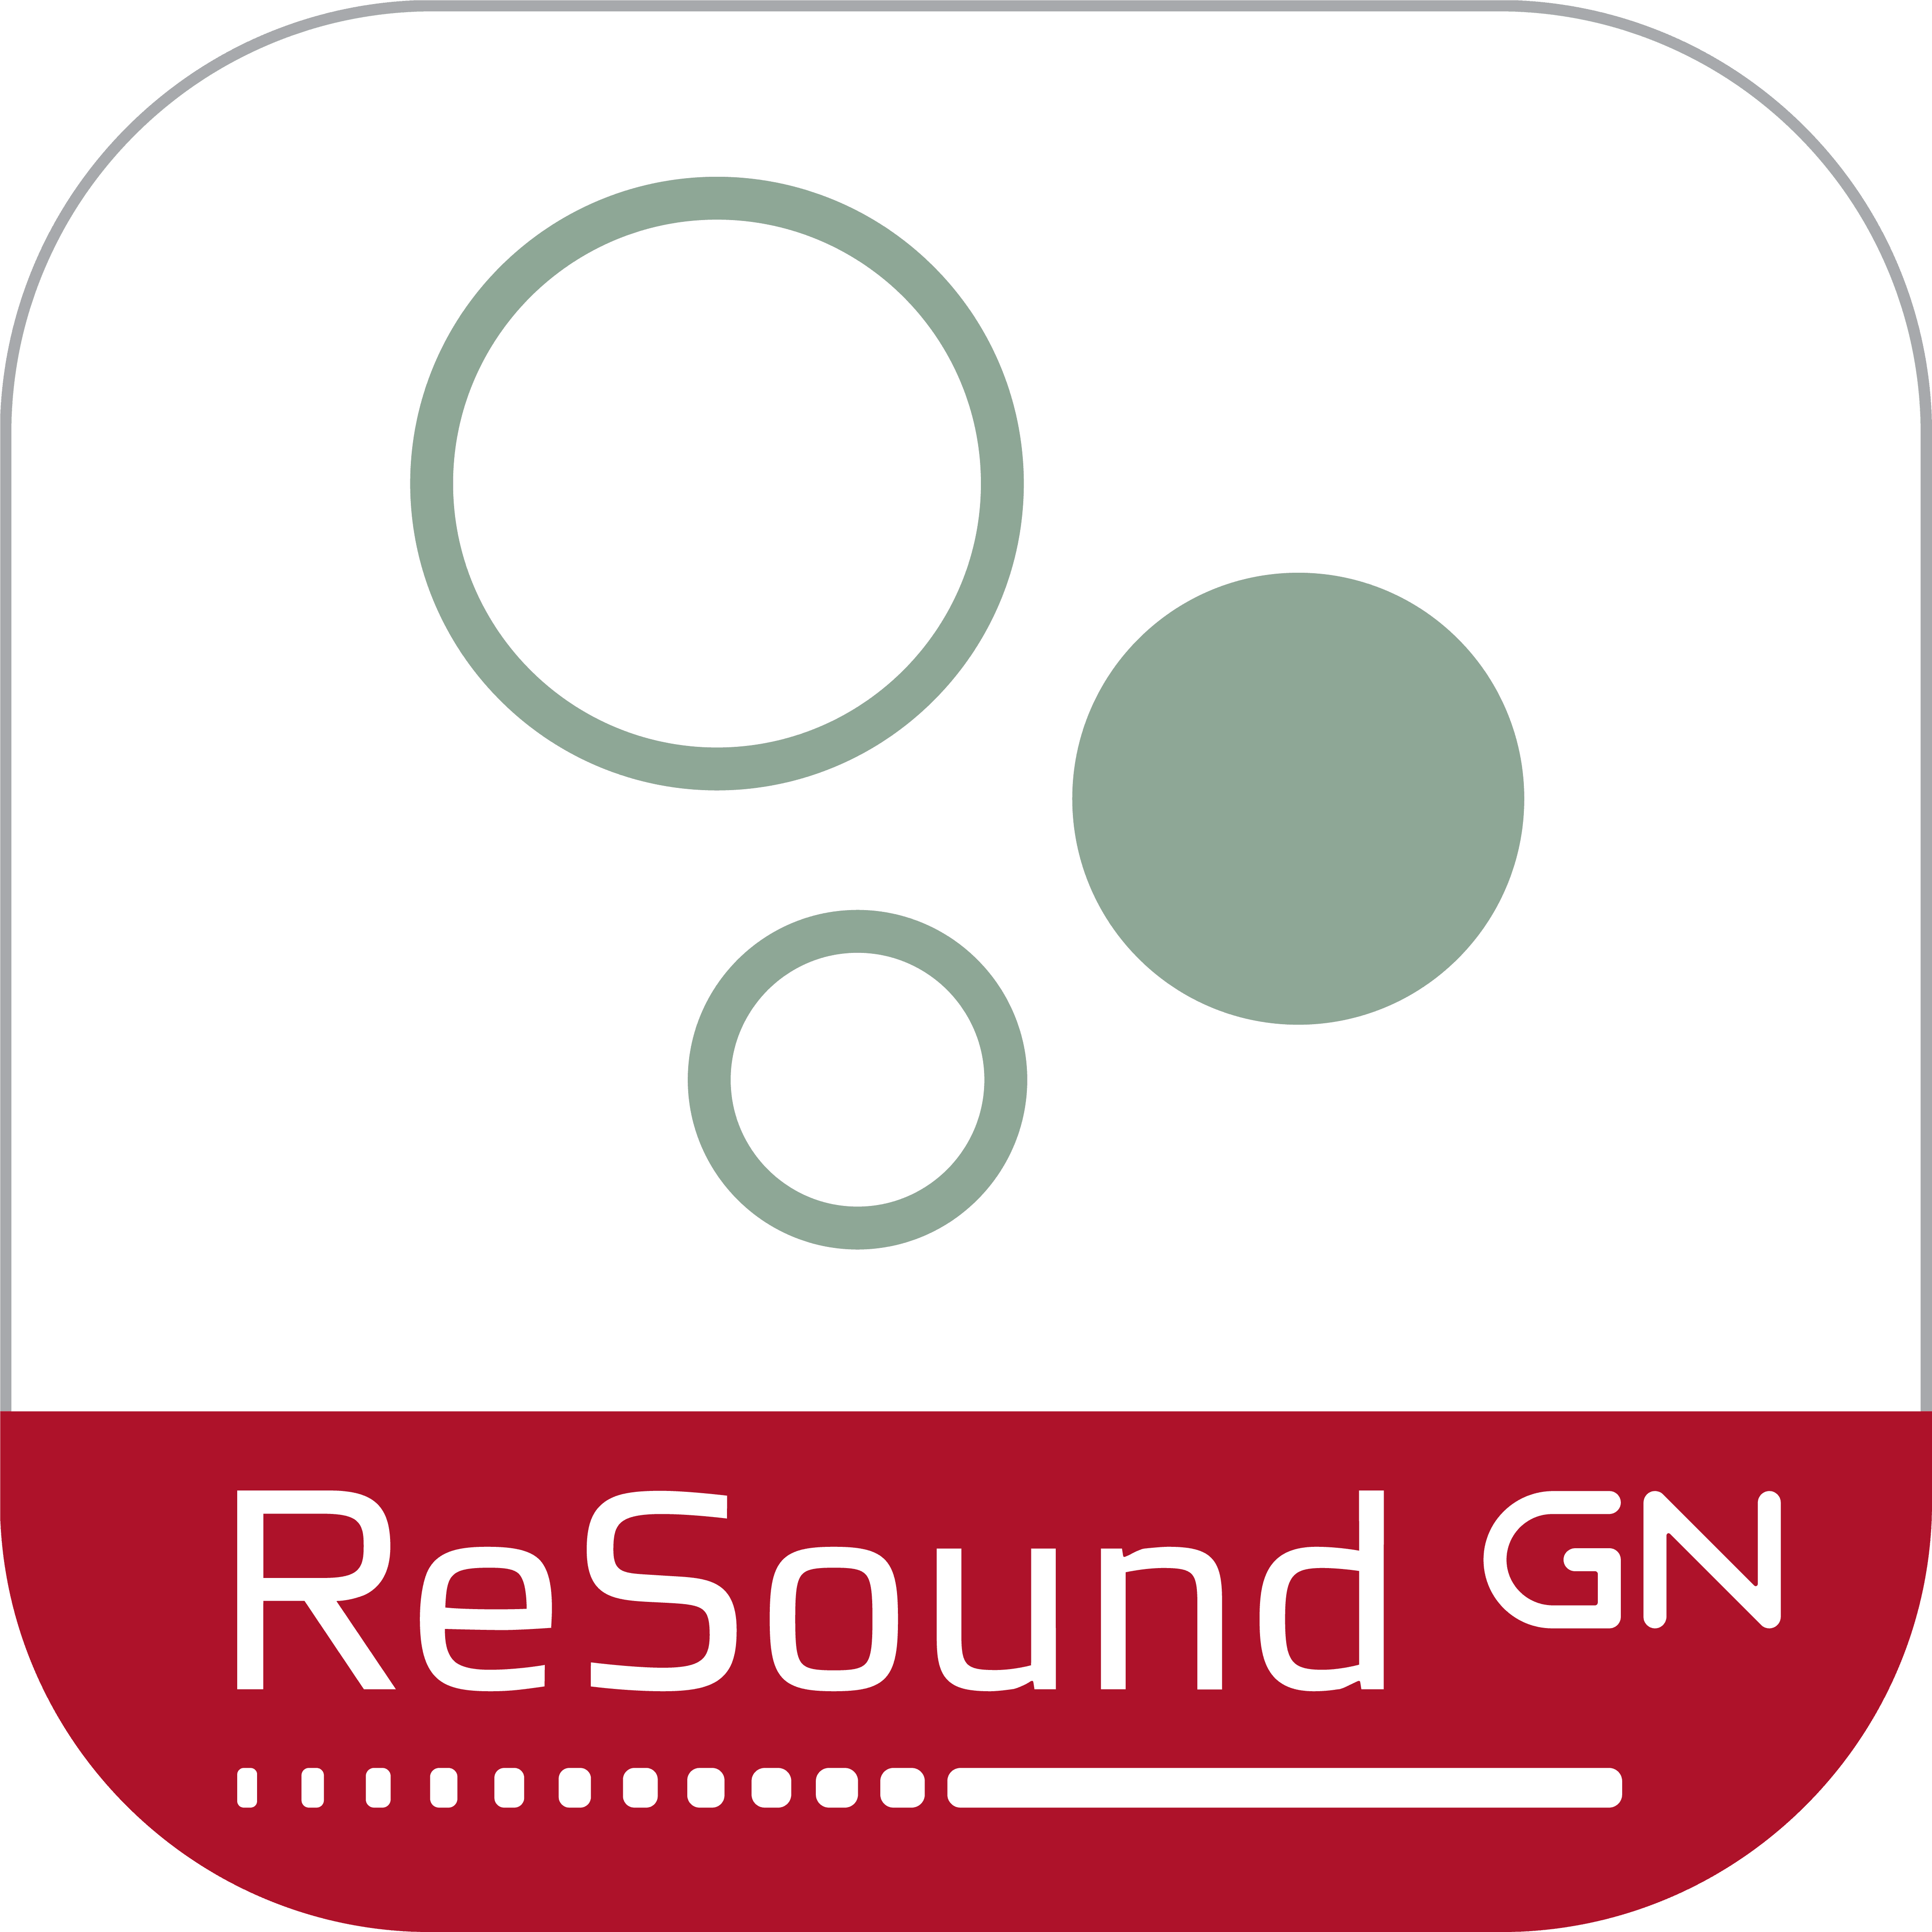 ReSound Relief appikon.